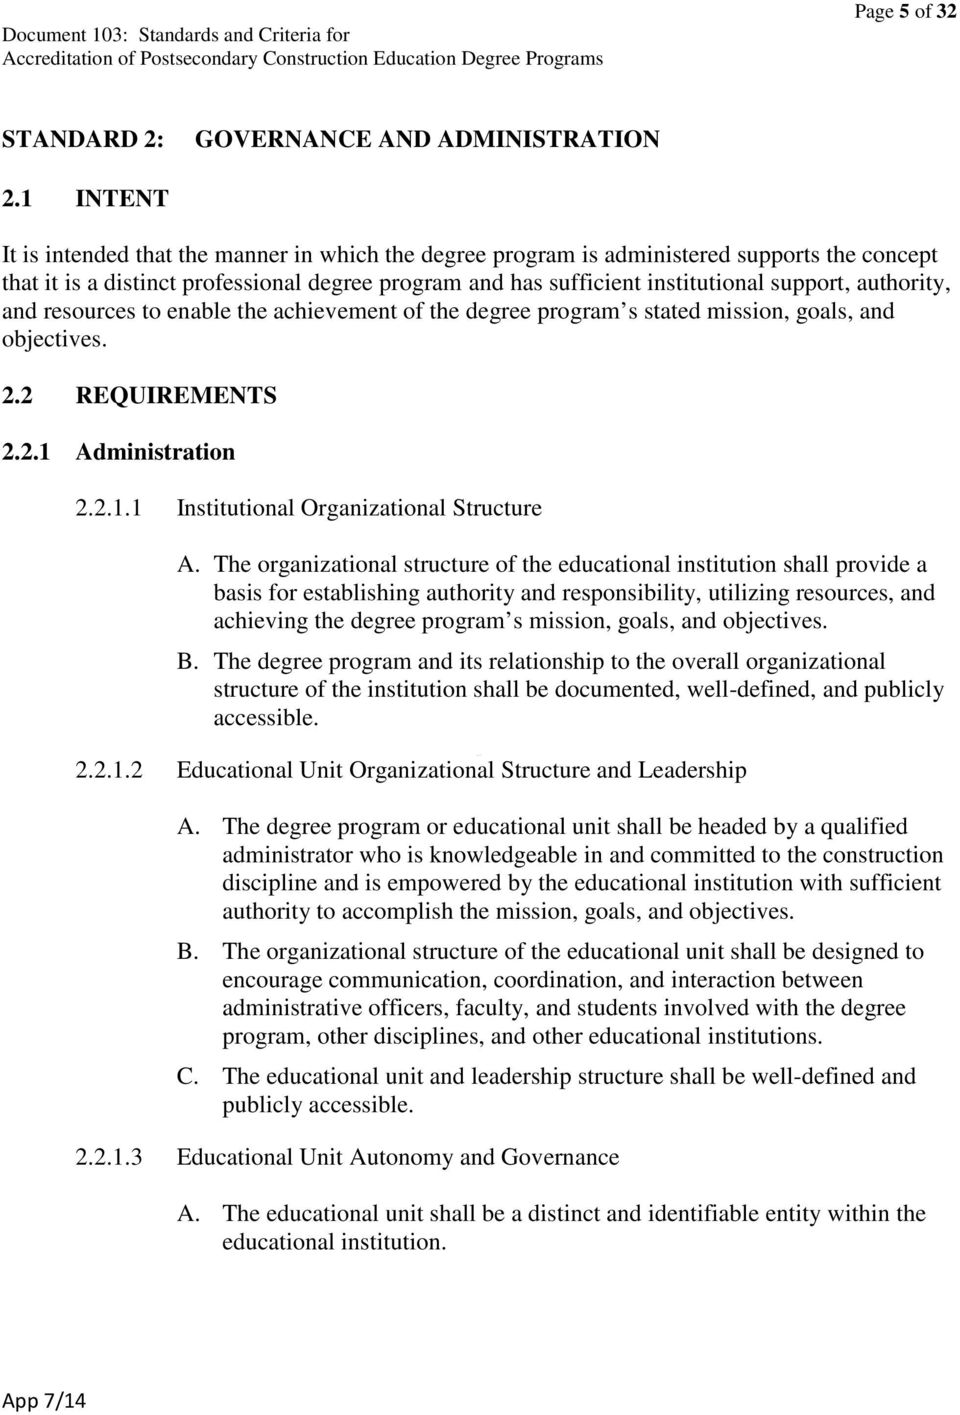 authority, and resources to enable the achievement of the degree program s stated mission, goals, and objectives. 2.2 REQUIREMENTS 2.2.1 Administration 2.2.1.1 Institutional Organizational Structure A.